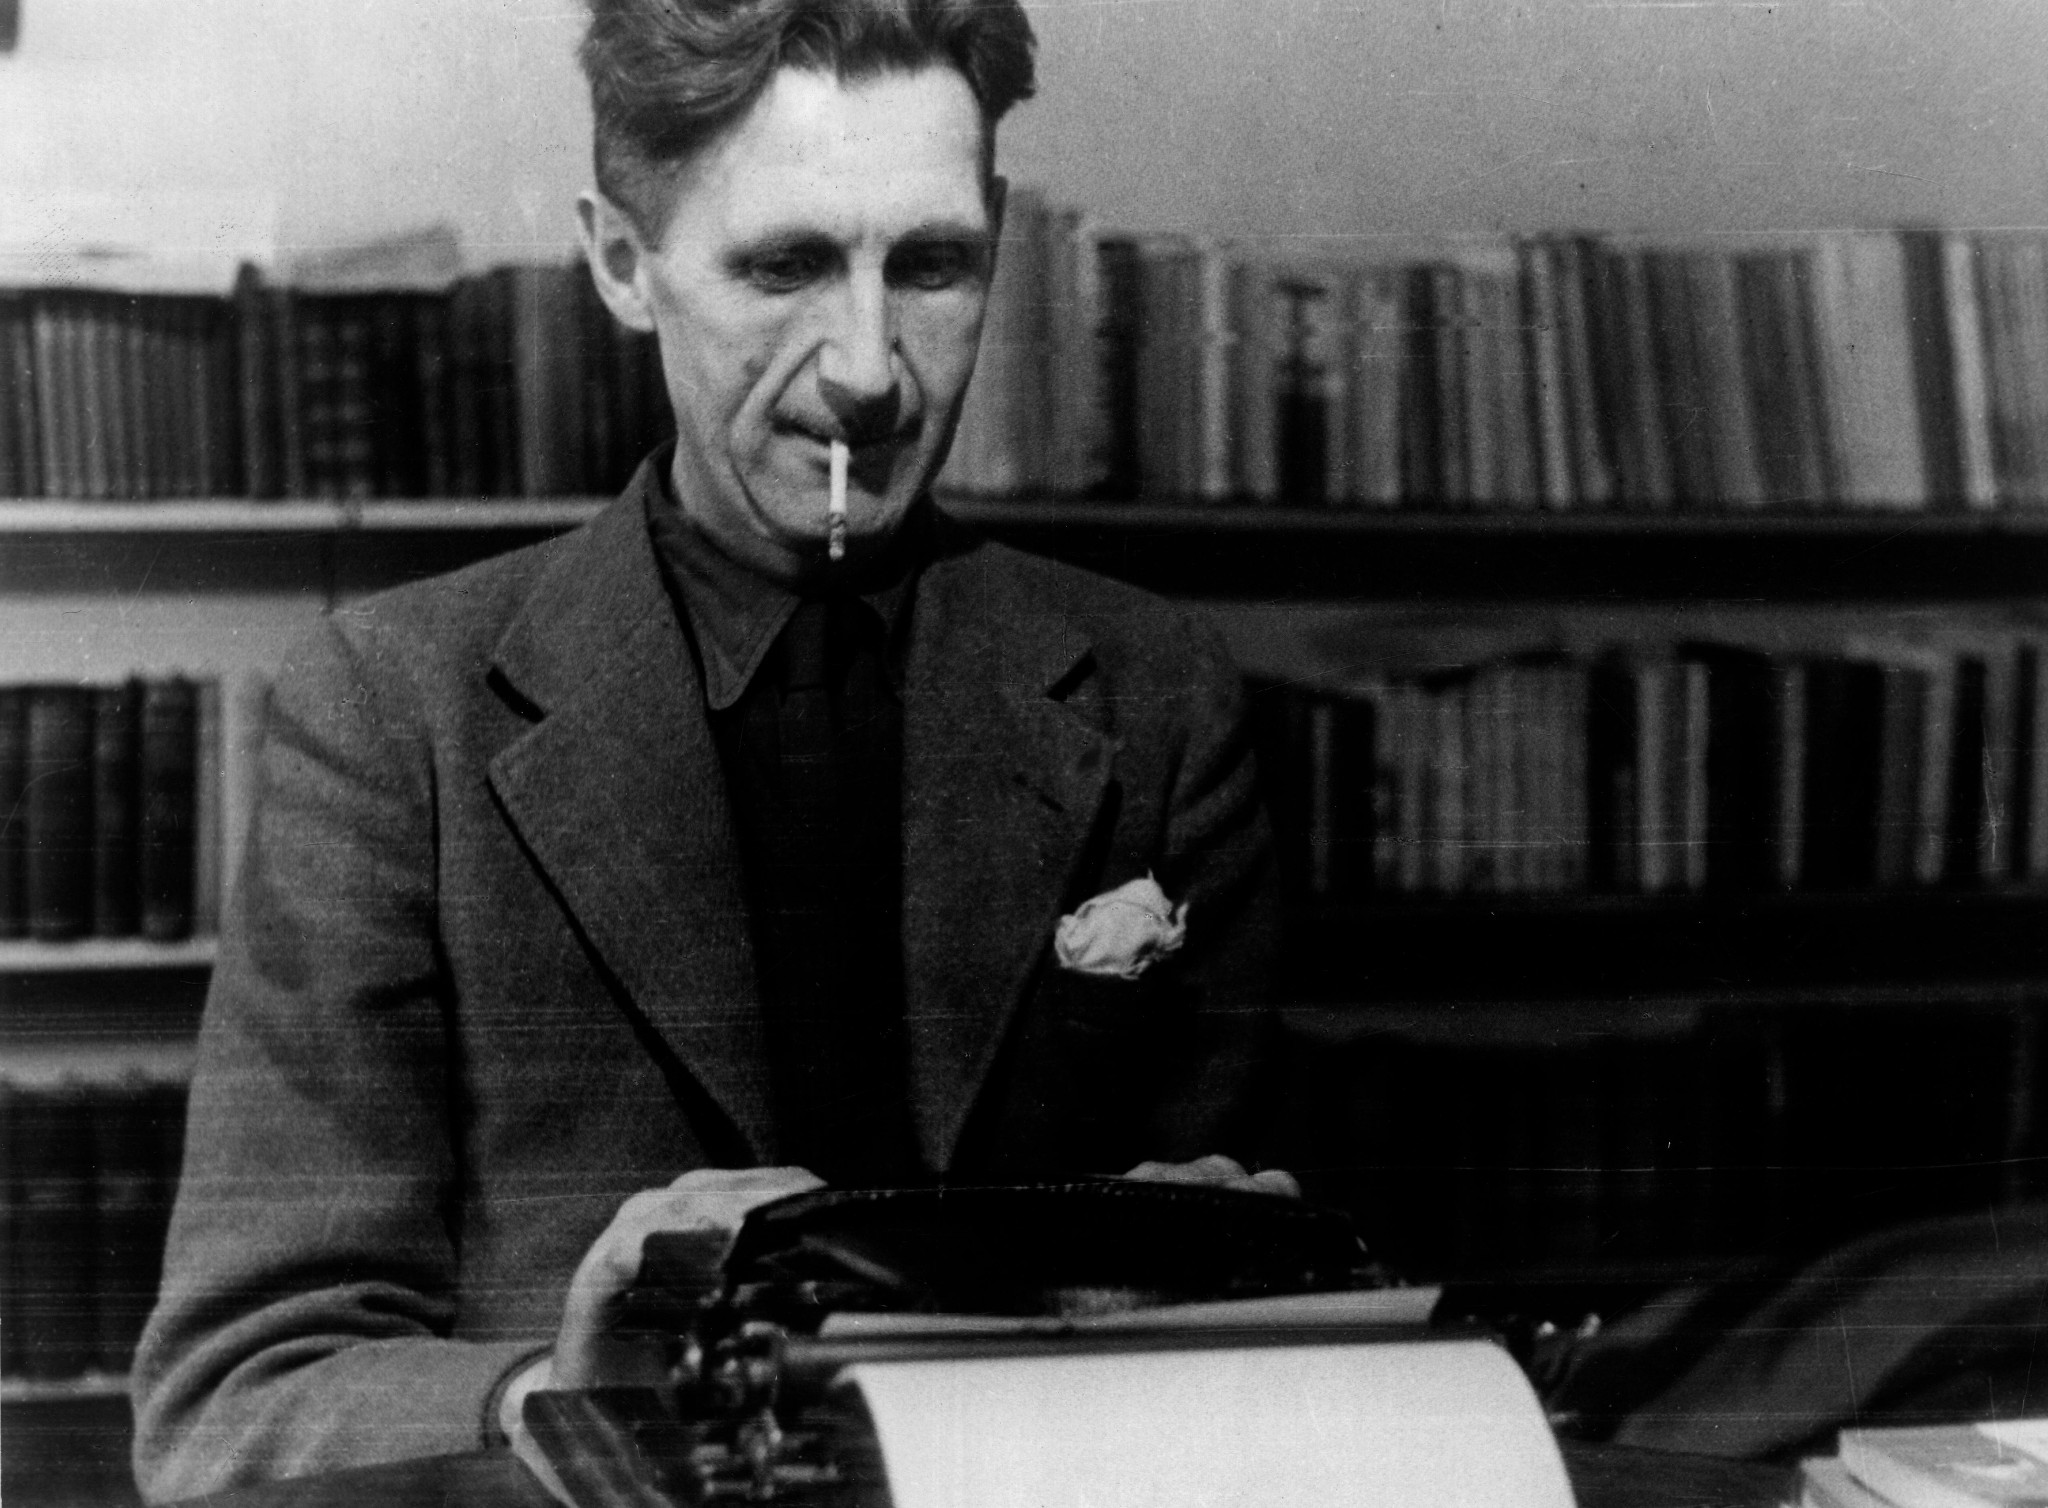 Welcome to dystopia – George Orwell experts on Donald Trump